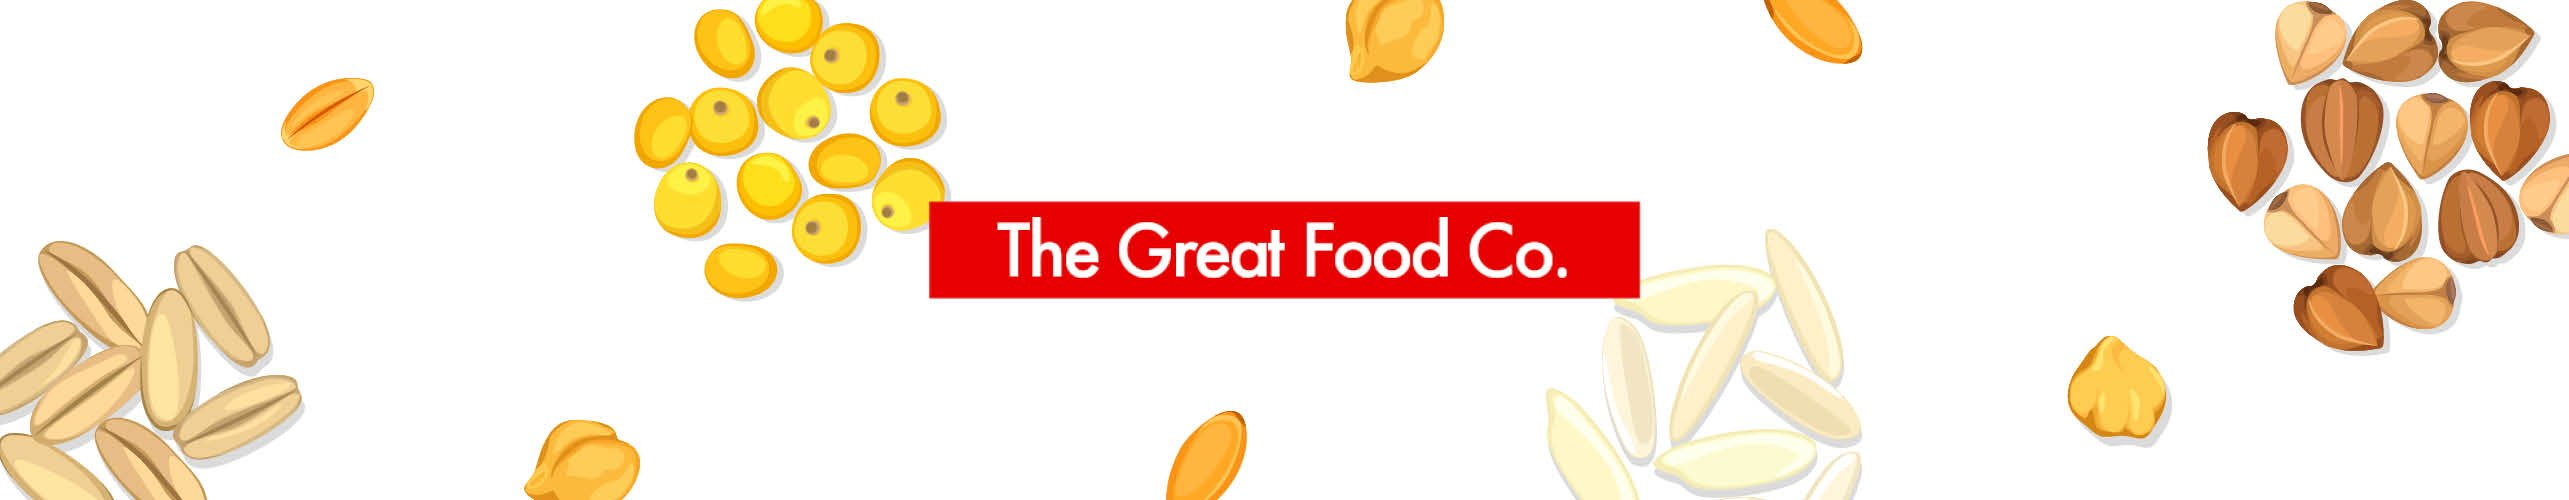 The Great Food Co.